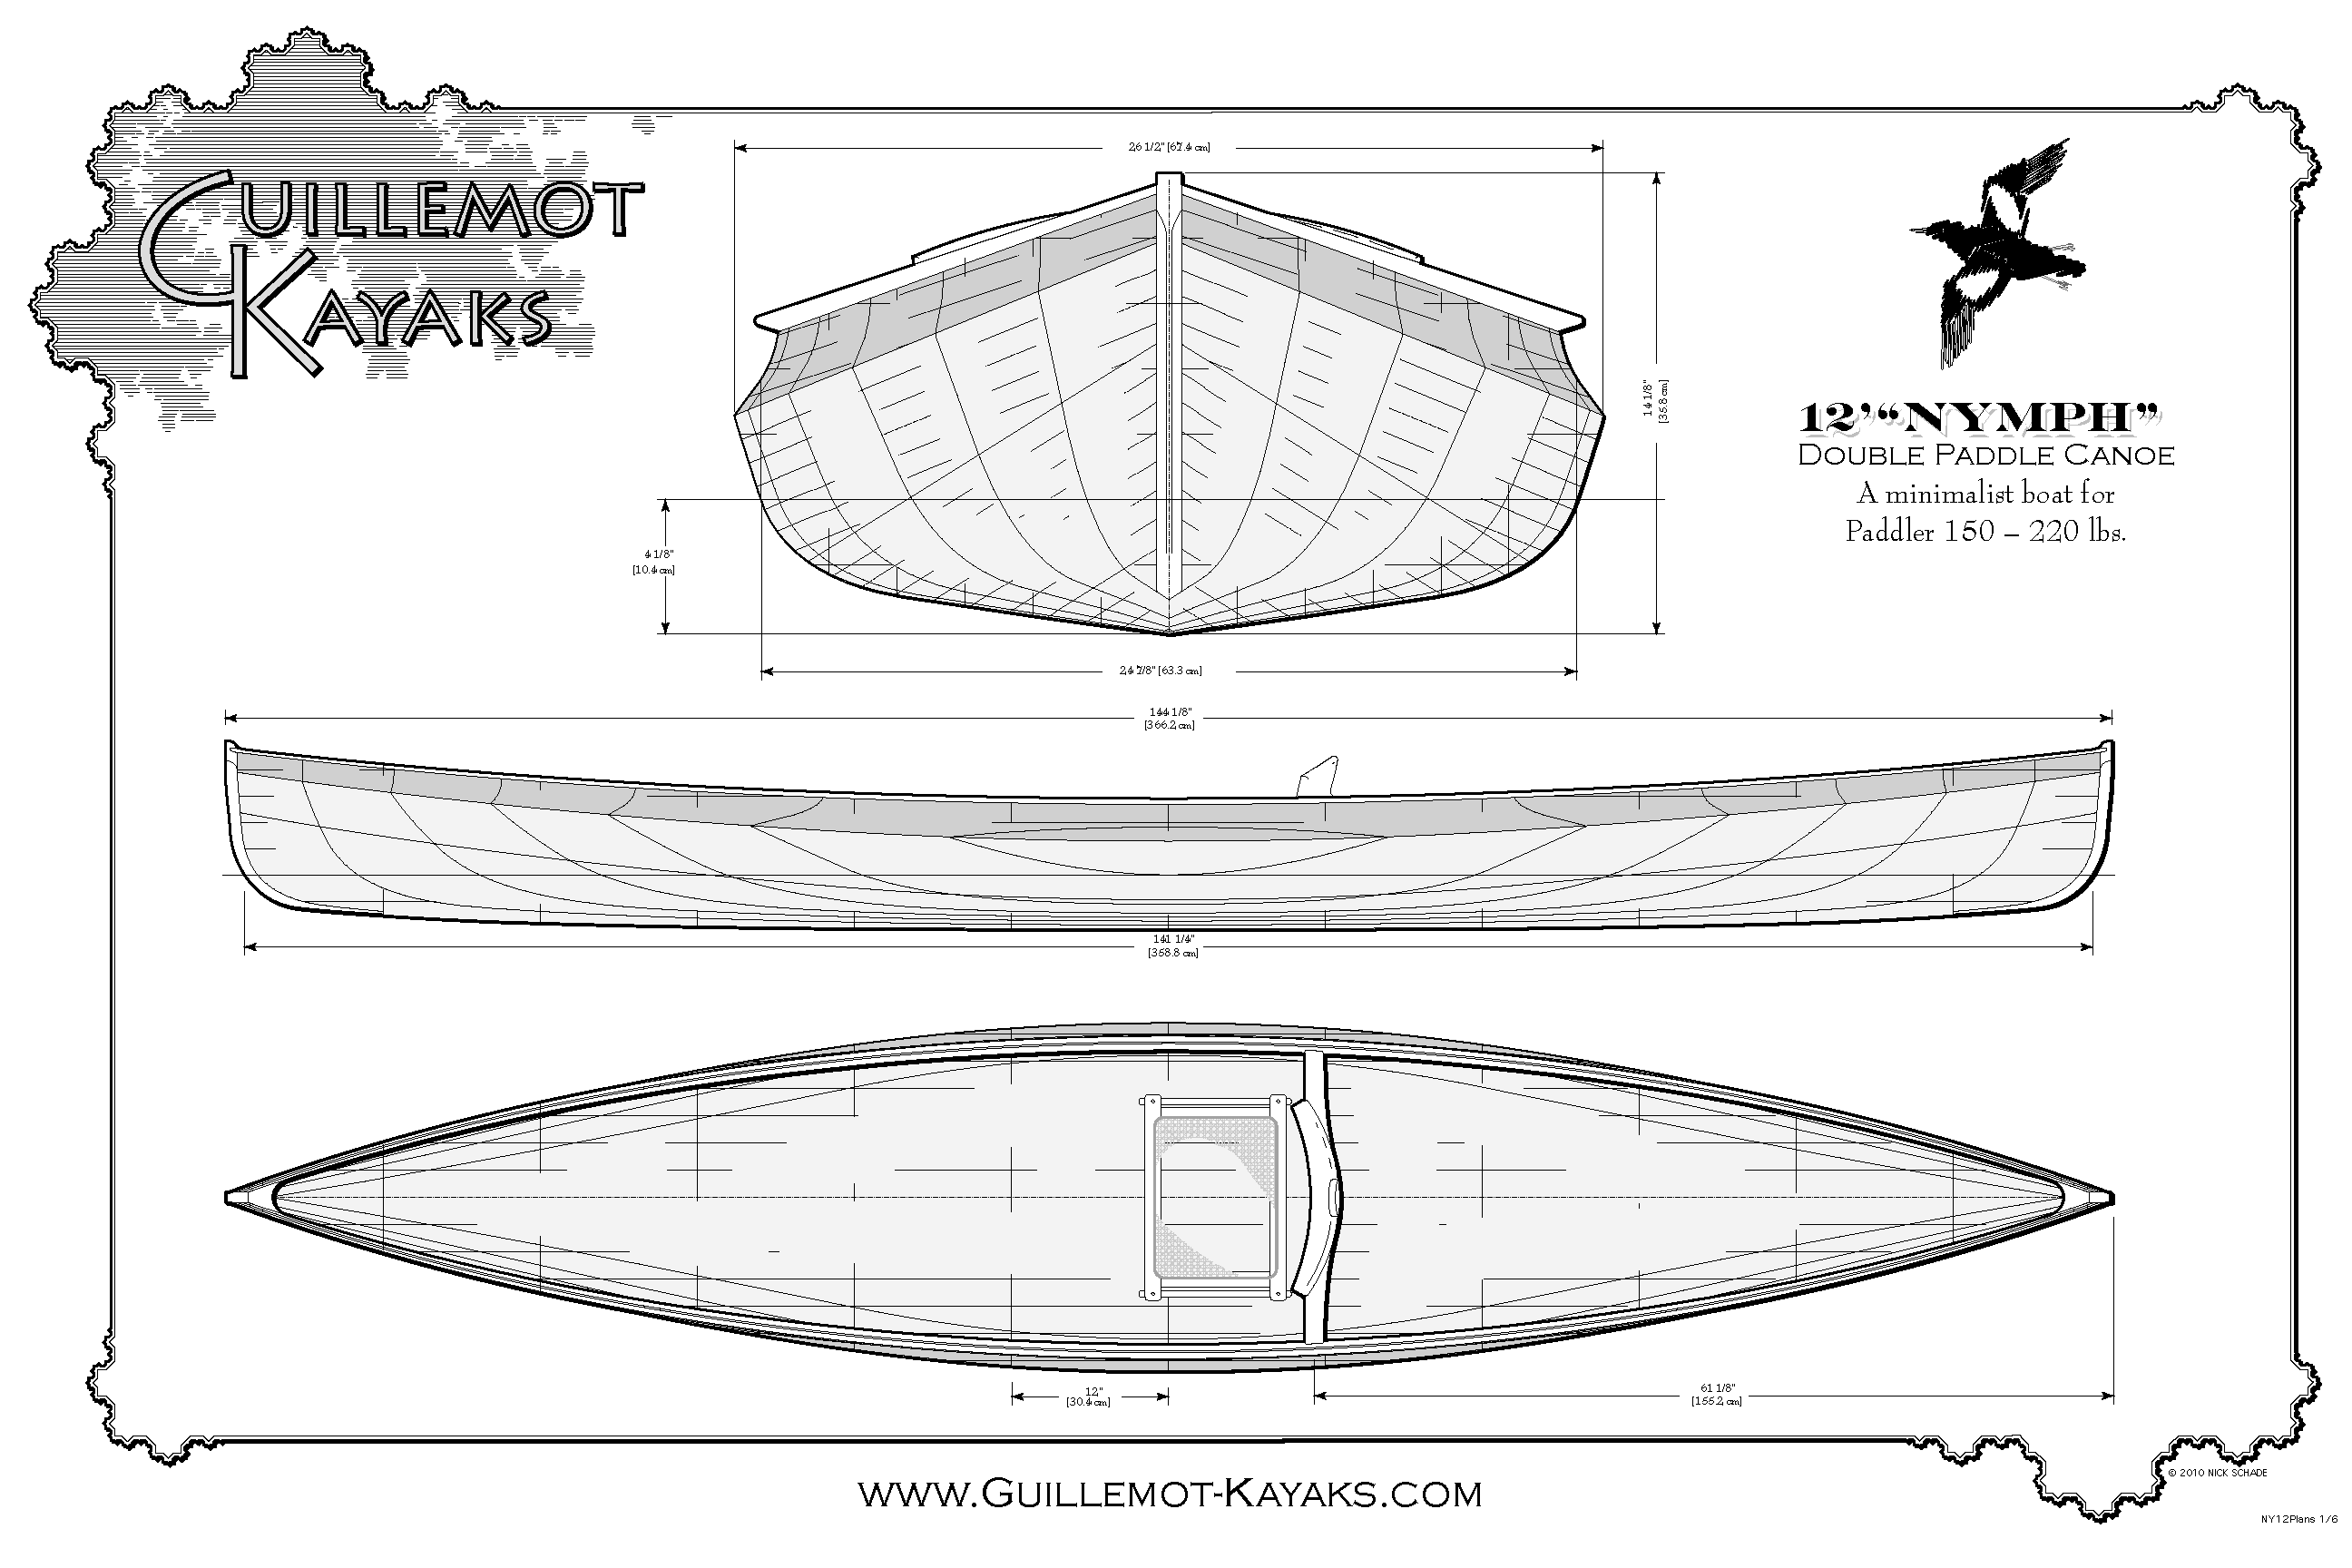 Nymph 12-foot pack canoe plans